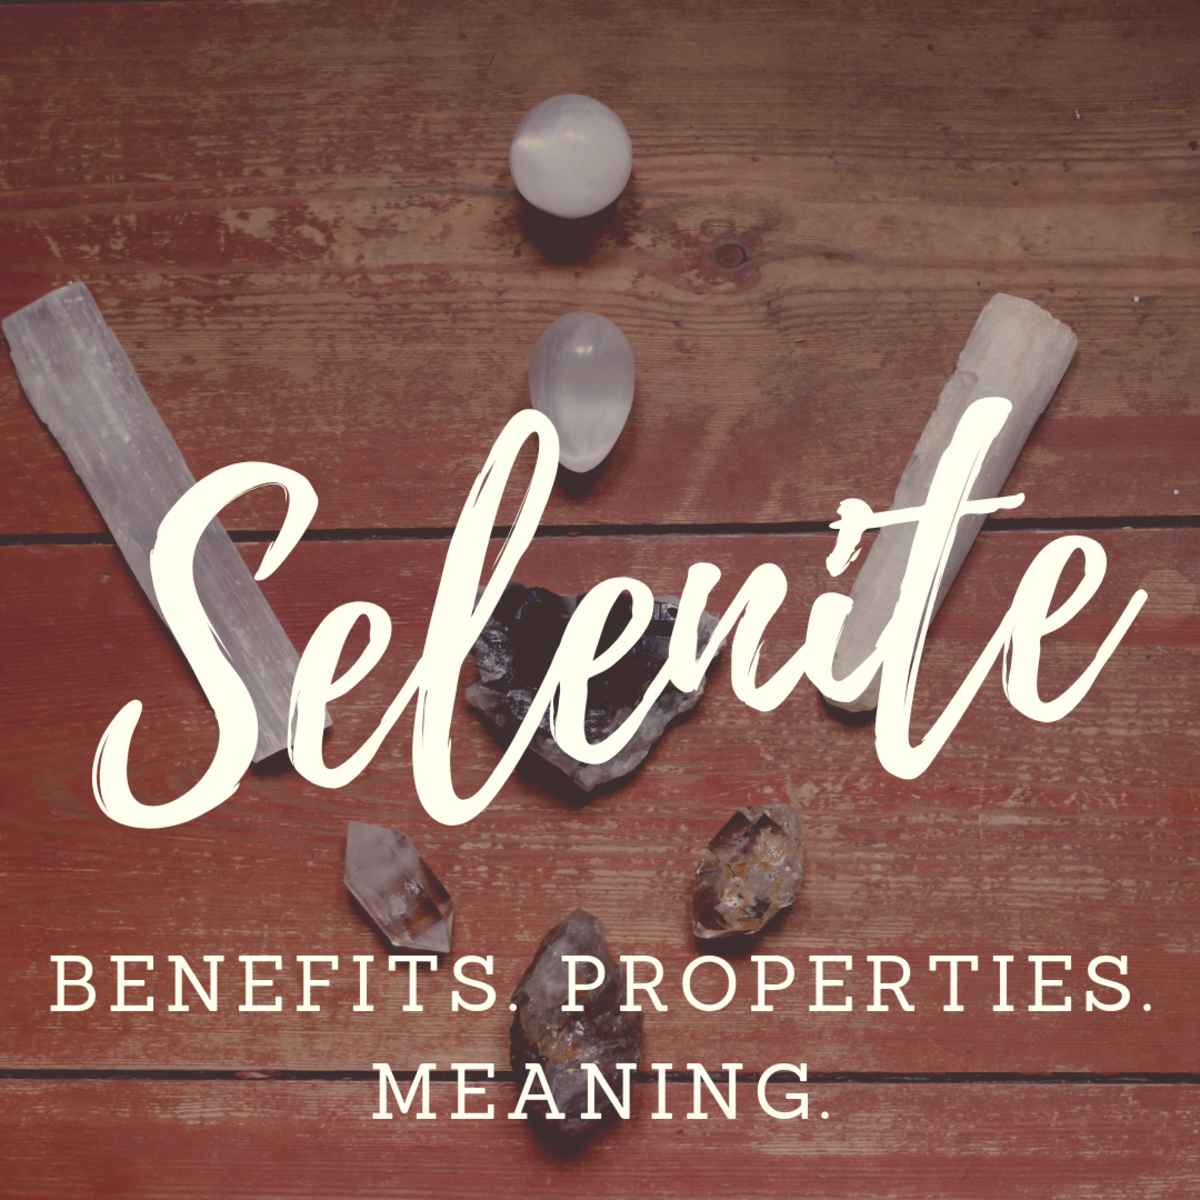 Selenite Stone Benefits, Properties, and Meaning